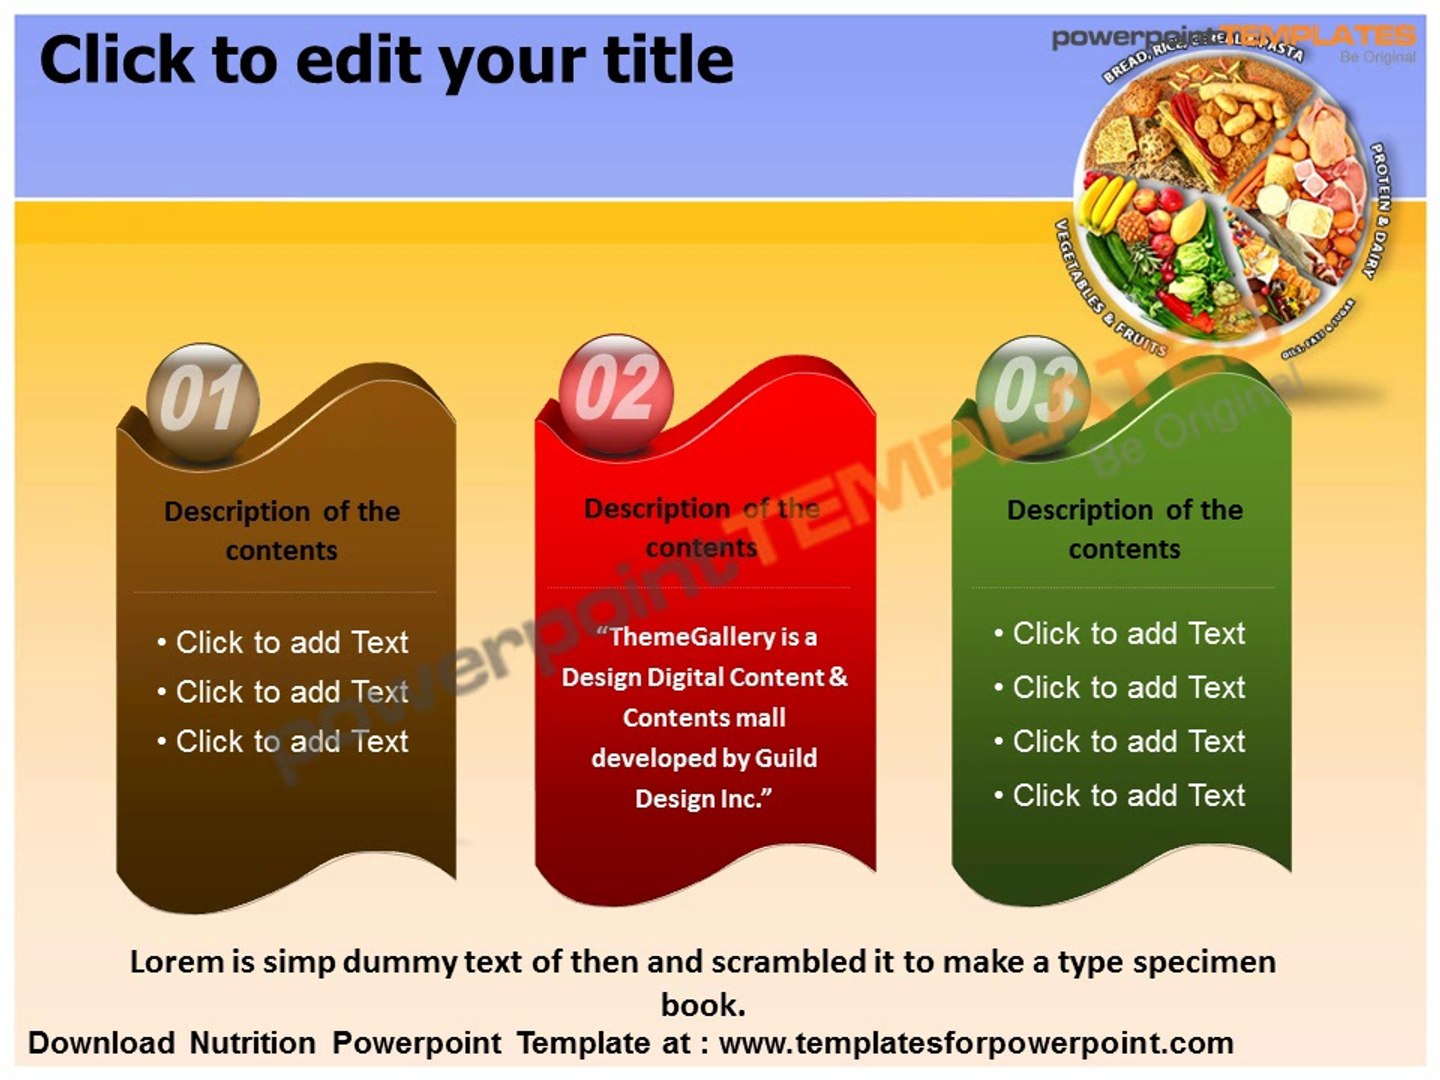 Nutrition Powerpoint Template Templates For Powerpoint Video Dailymotion